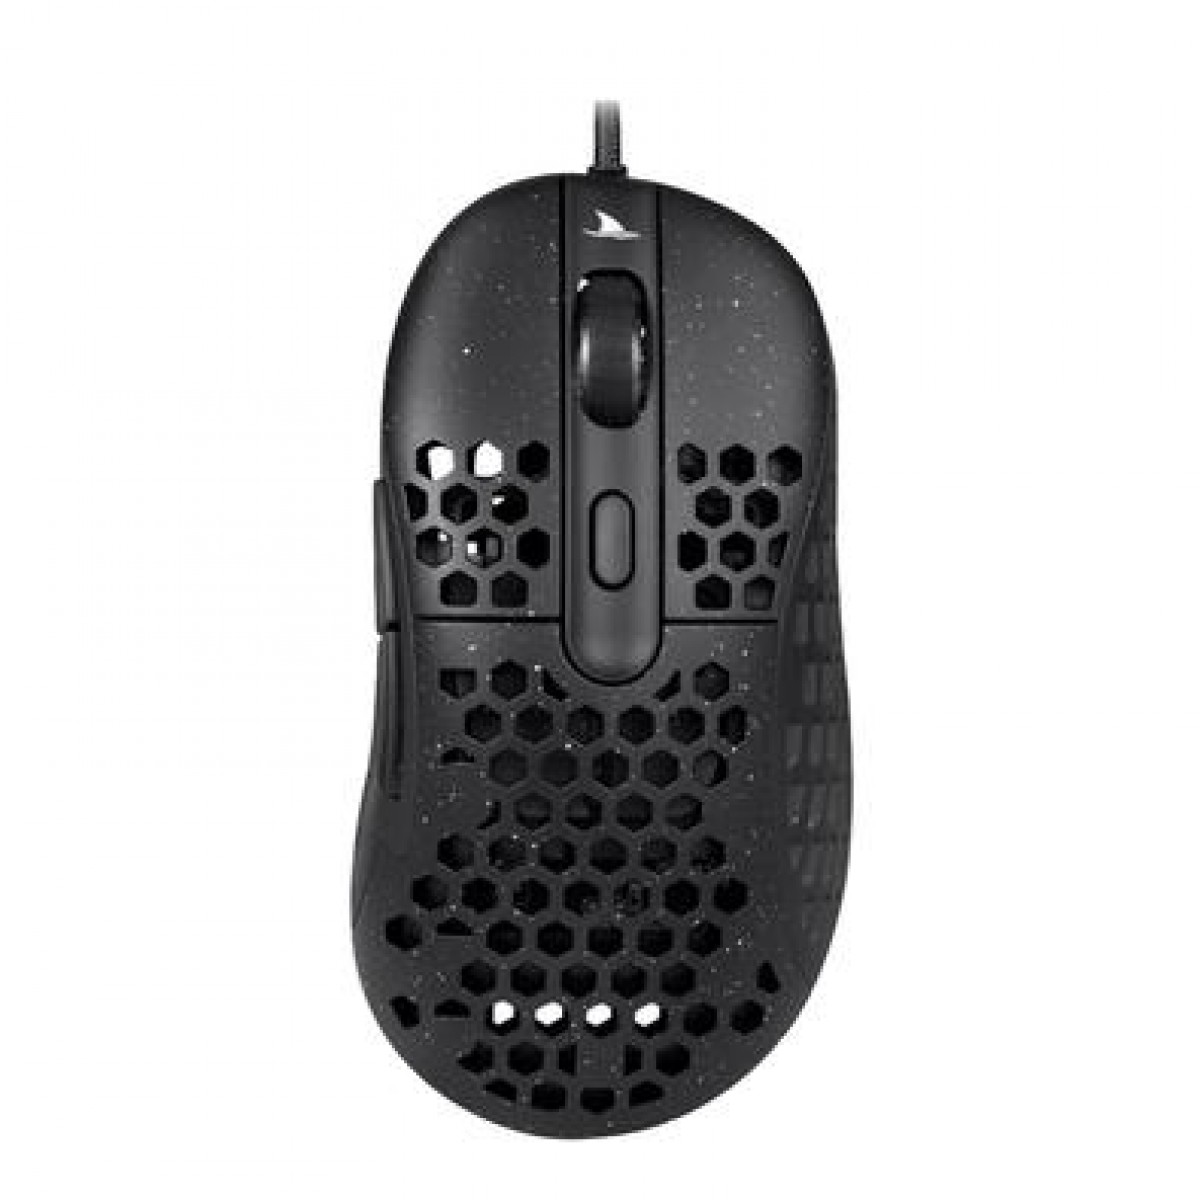 Mouse Gamer Motospeed DarmoShark N1 Essential, Black, FMSMS0086PTO